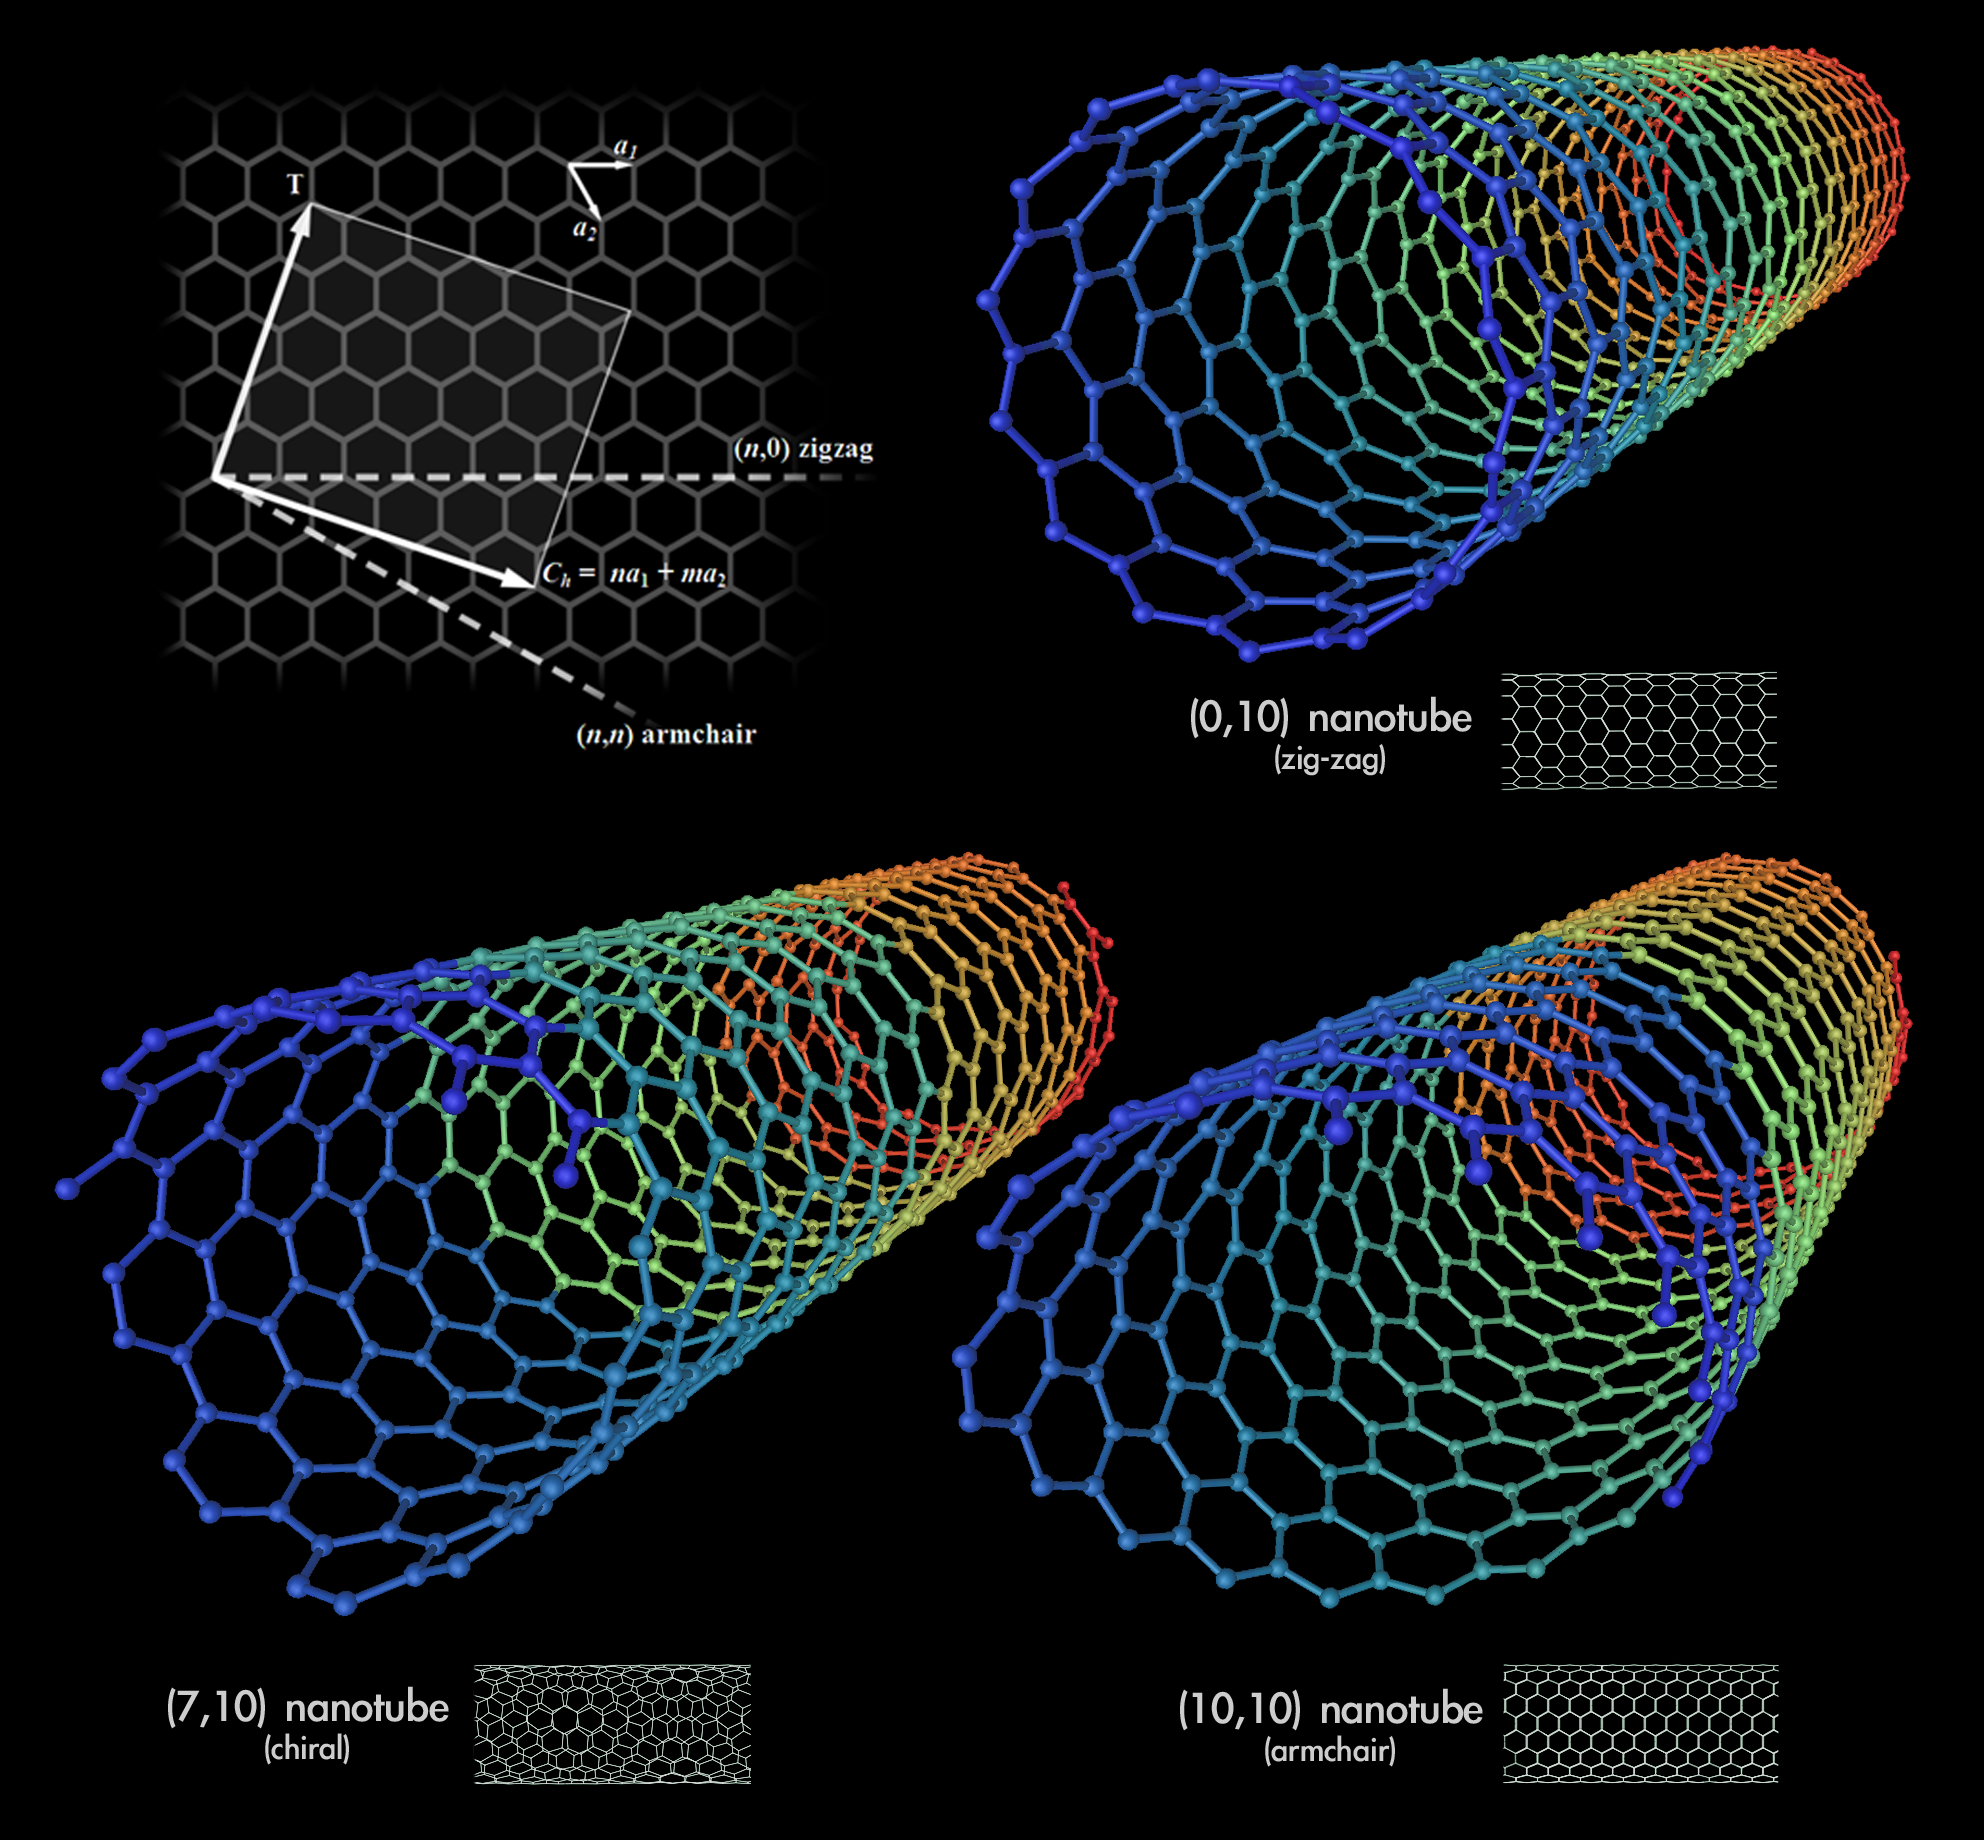 Scientists use carbon nanotube technology to develop robust water desalination membranes